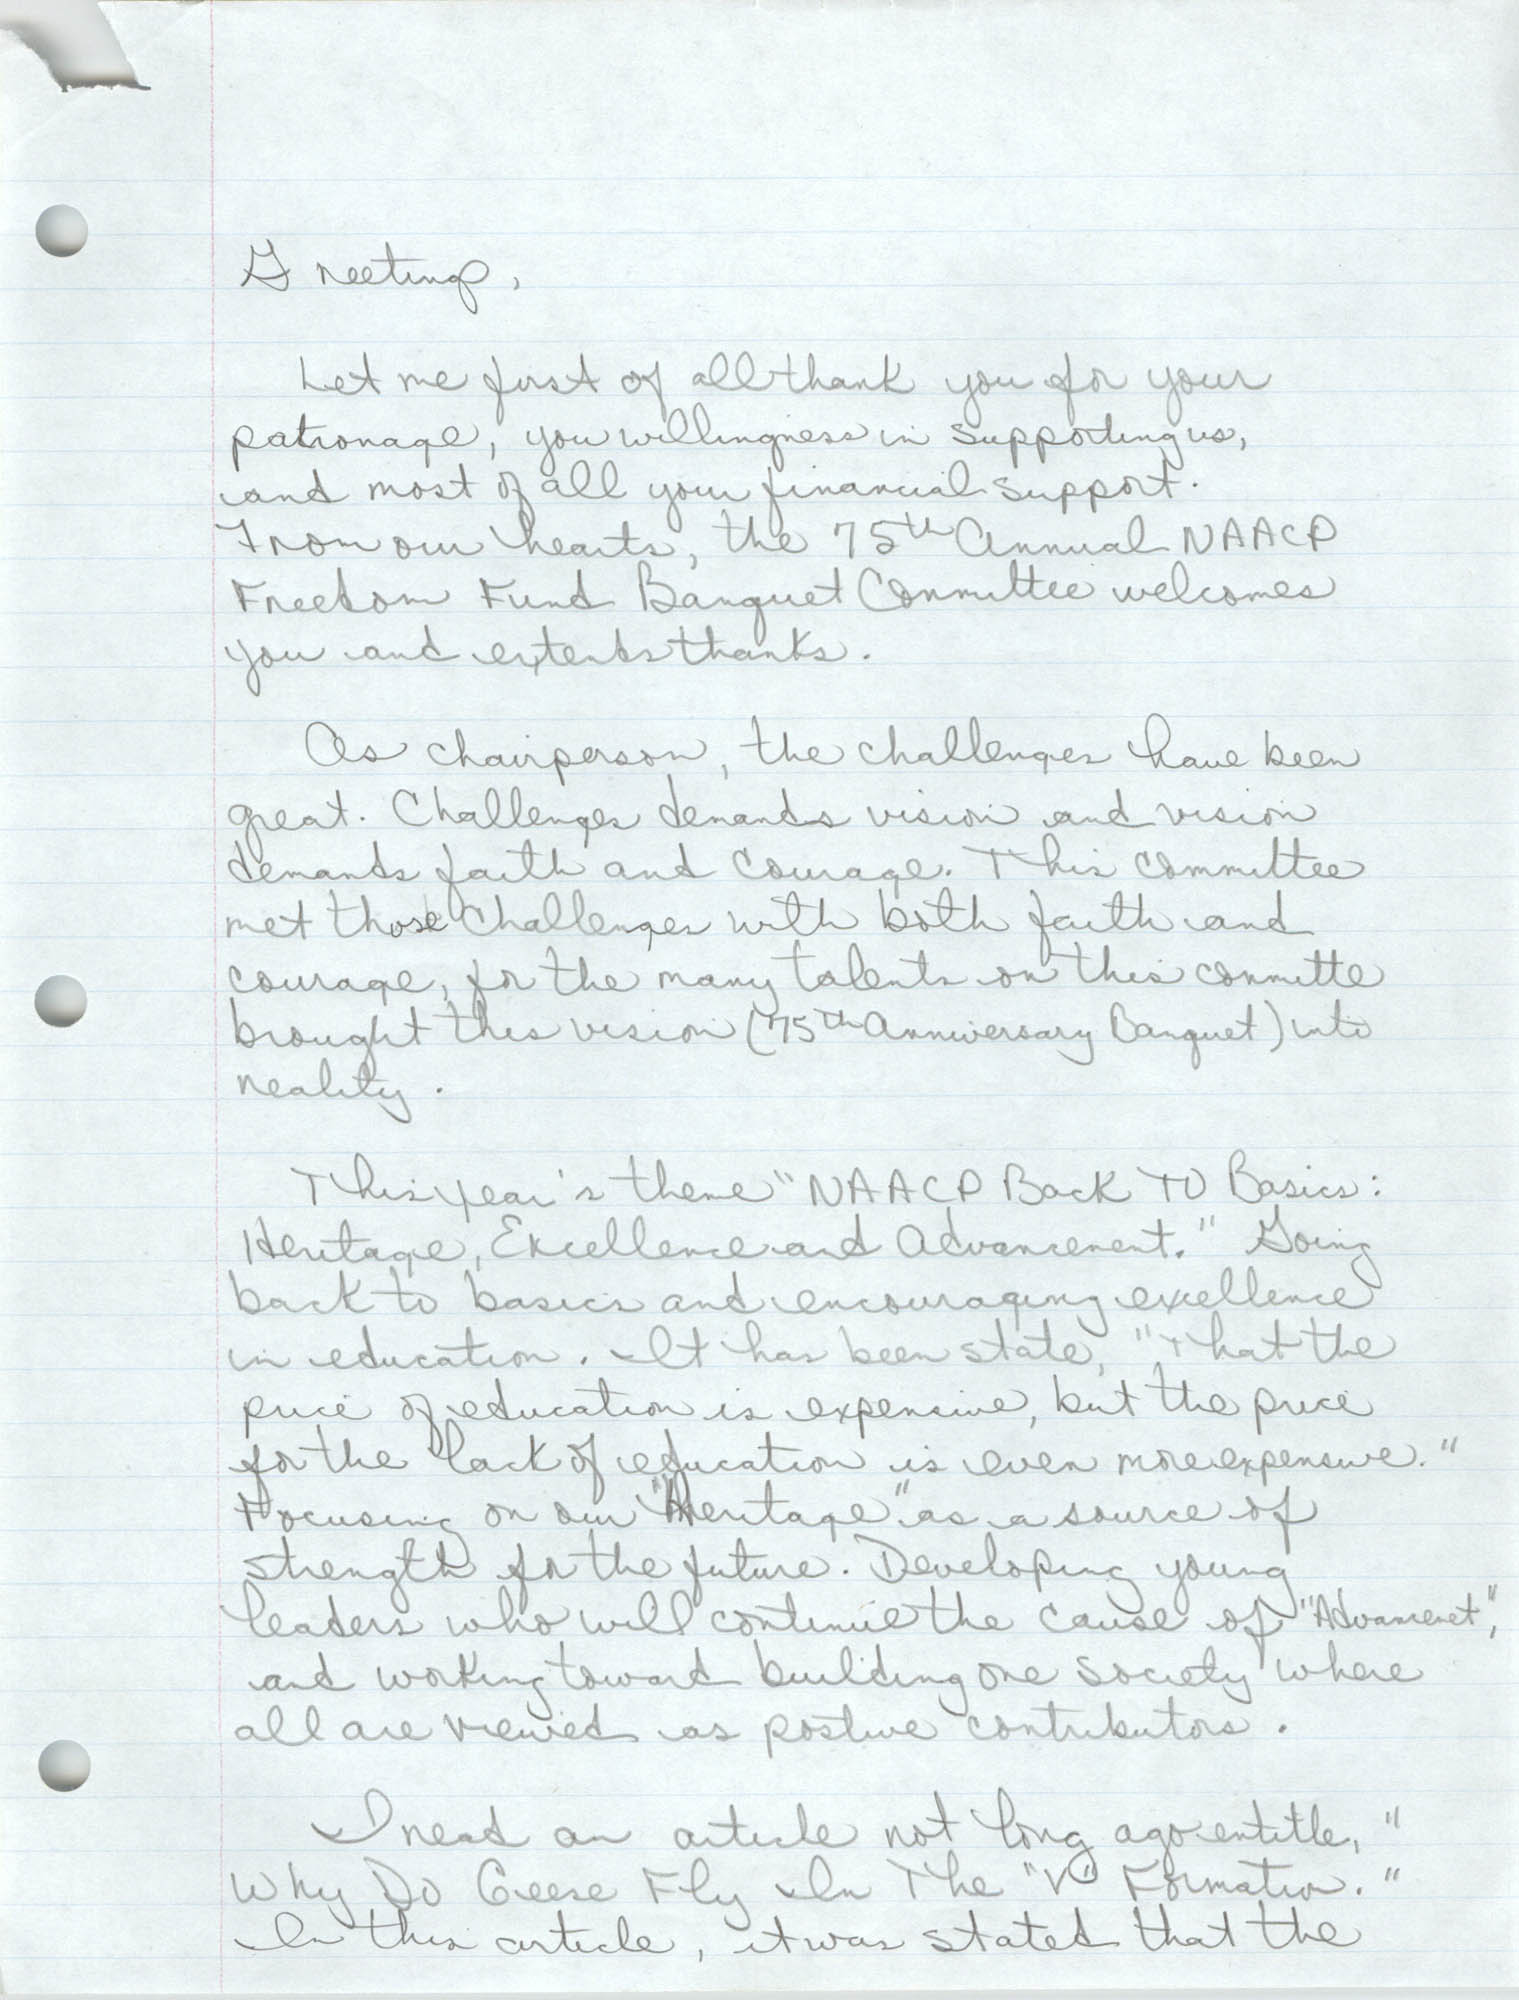 Handwritten Speech, 1991 Freedom Fund Banquet, David Coleman